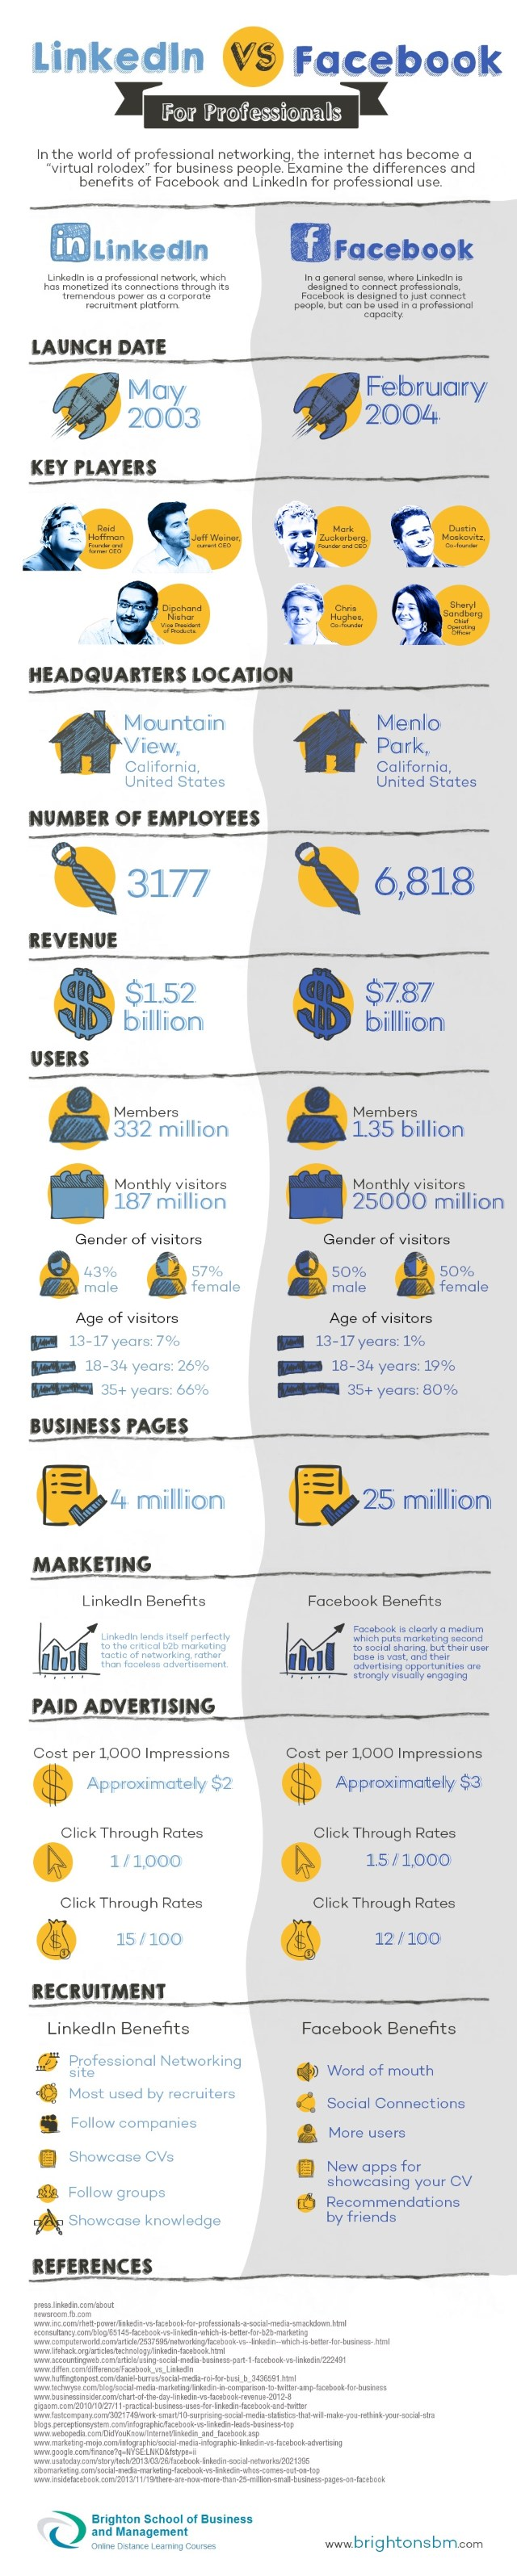 BSBM IG - LinkedIn vs Facebook - Infographic